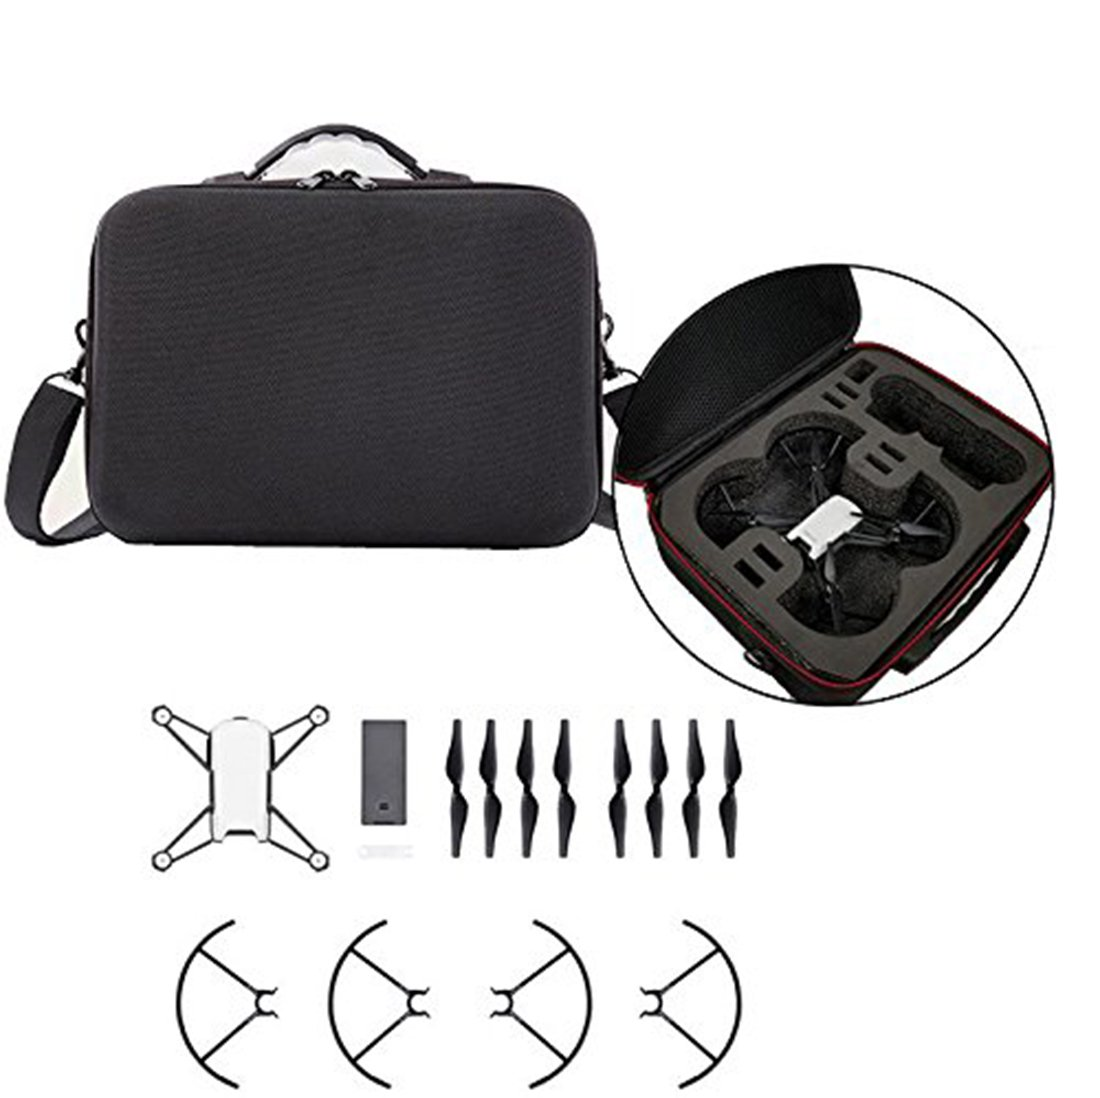 Tineer Waterproof Storage Shoulder Bag Hard Carry Case for Tello Drone and Accessory